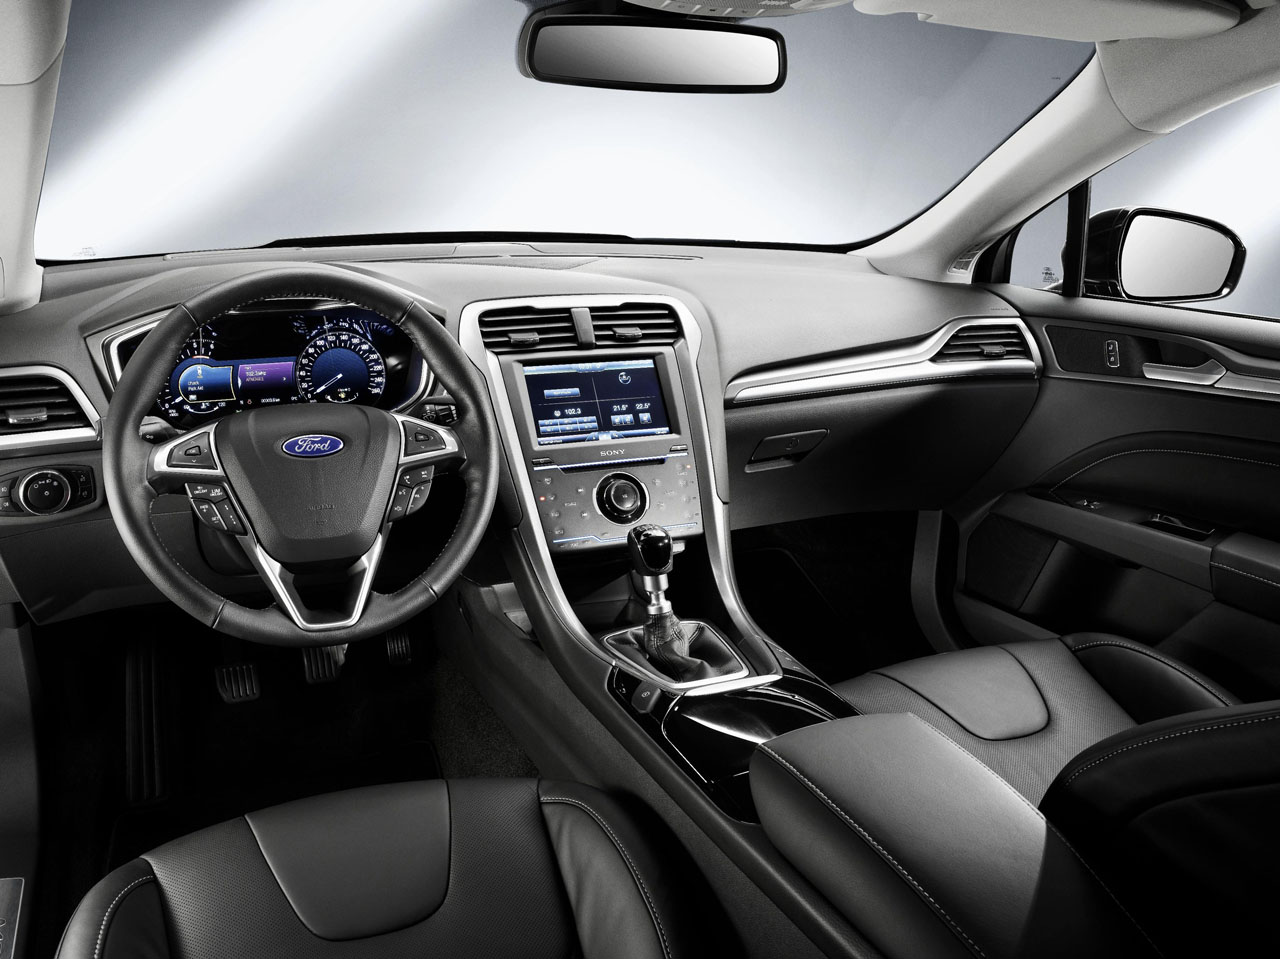 New Ford Mondeo interior